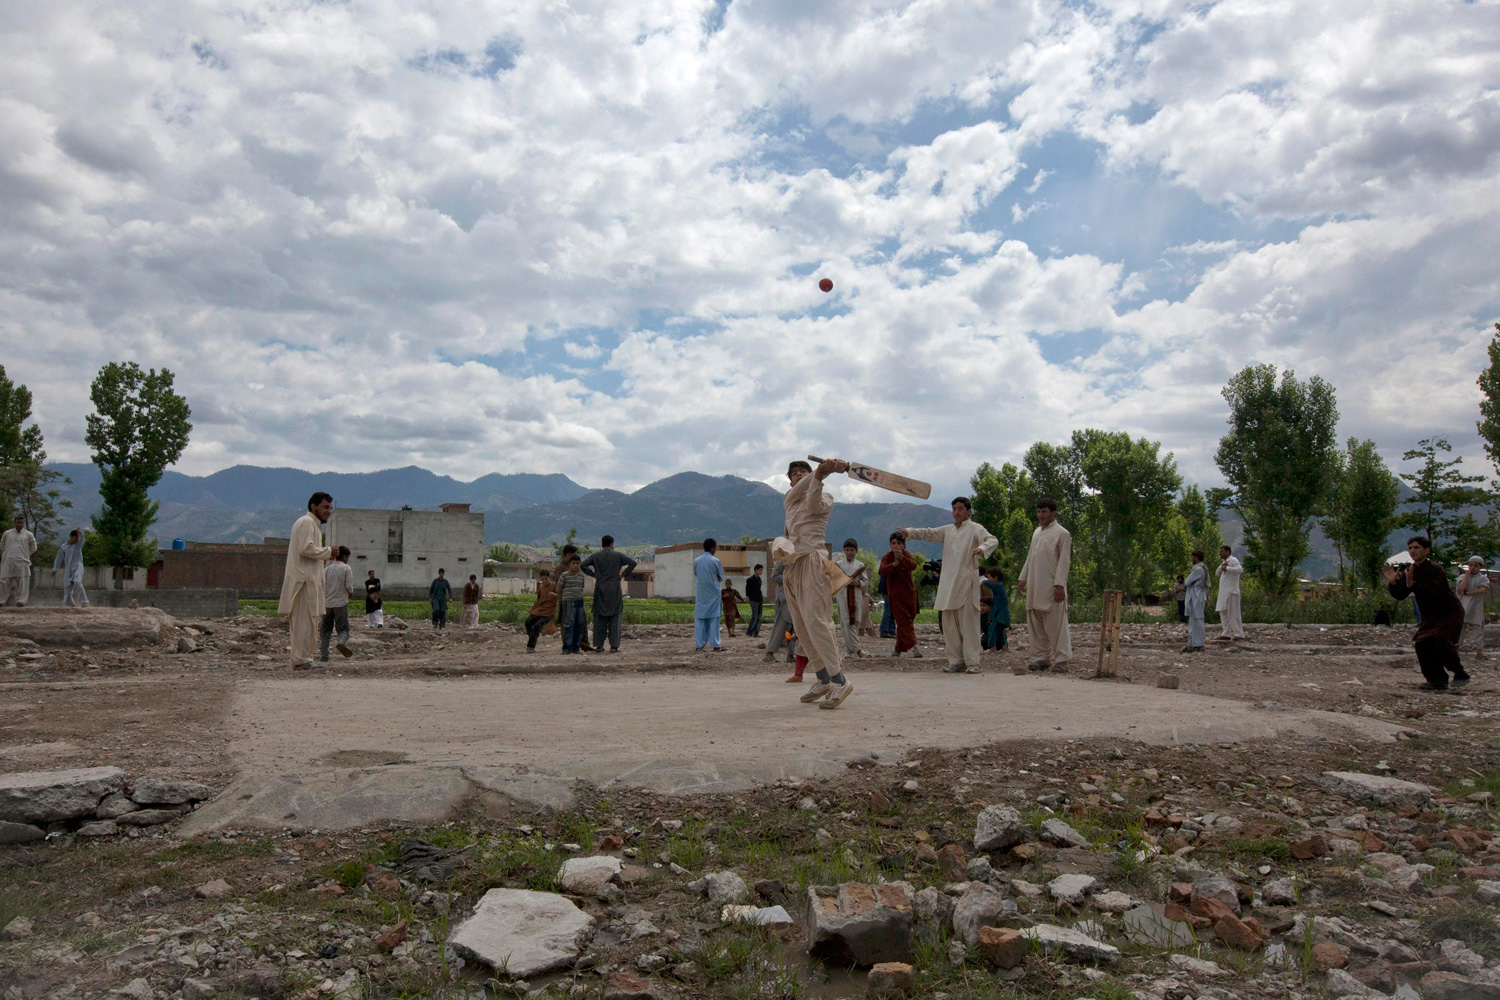 May 1, 2012. Children play cricket on the demolished site of the compound of Osama bin Laden in Abbottabad, Pakistan.